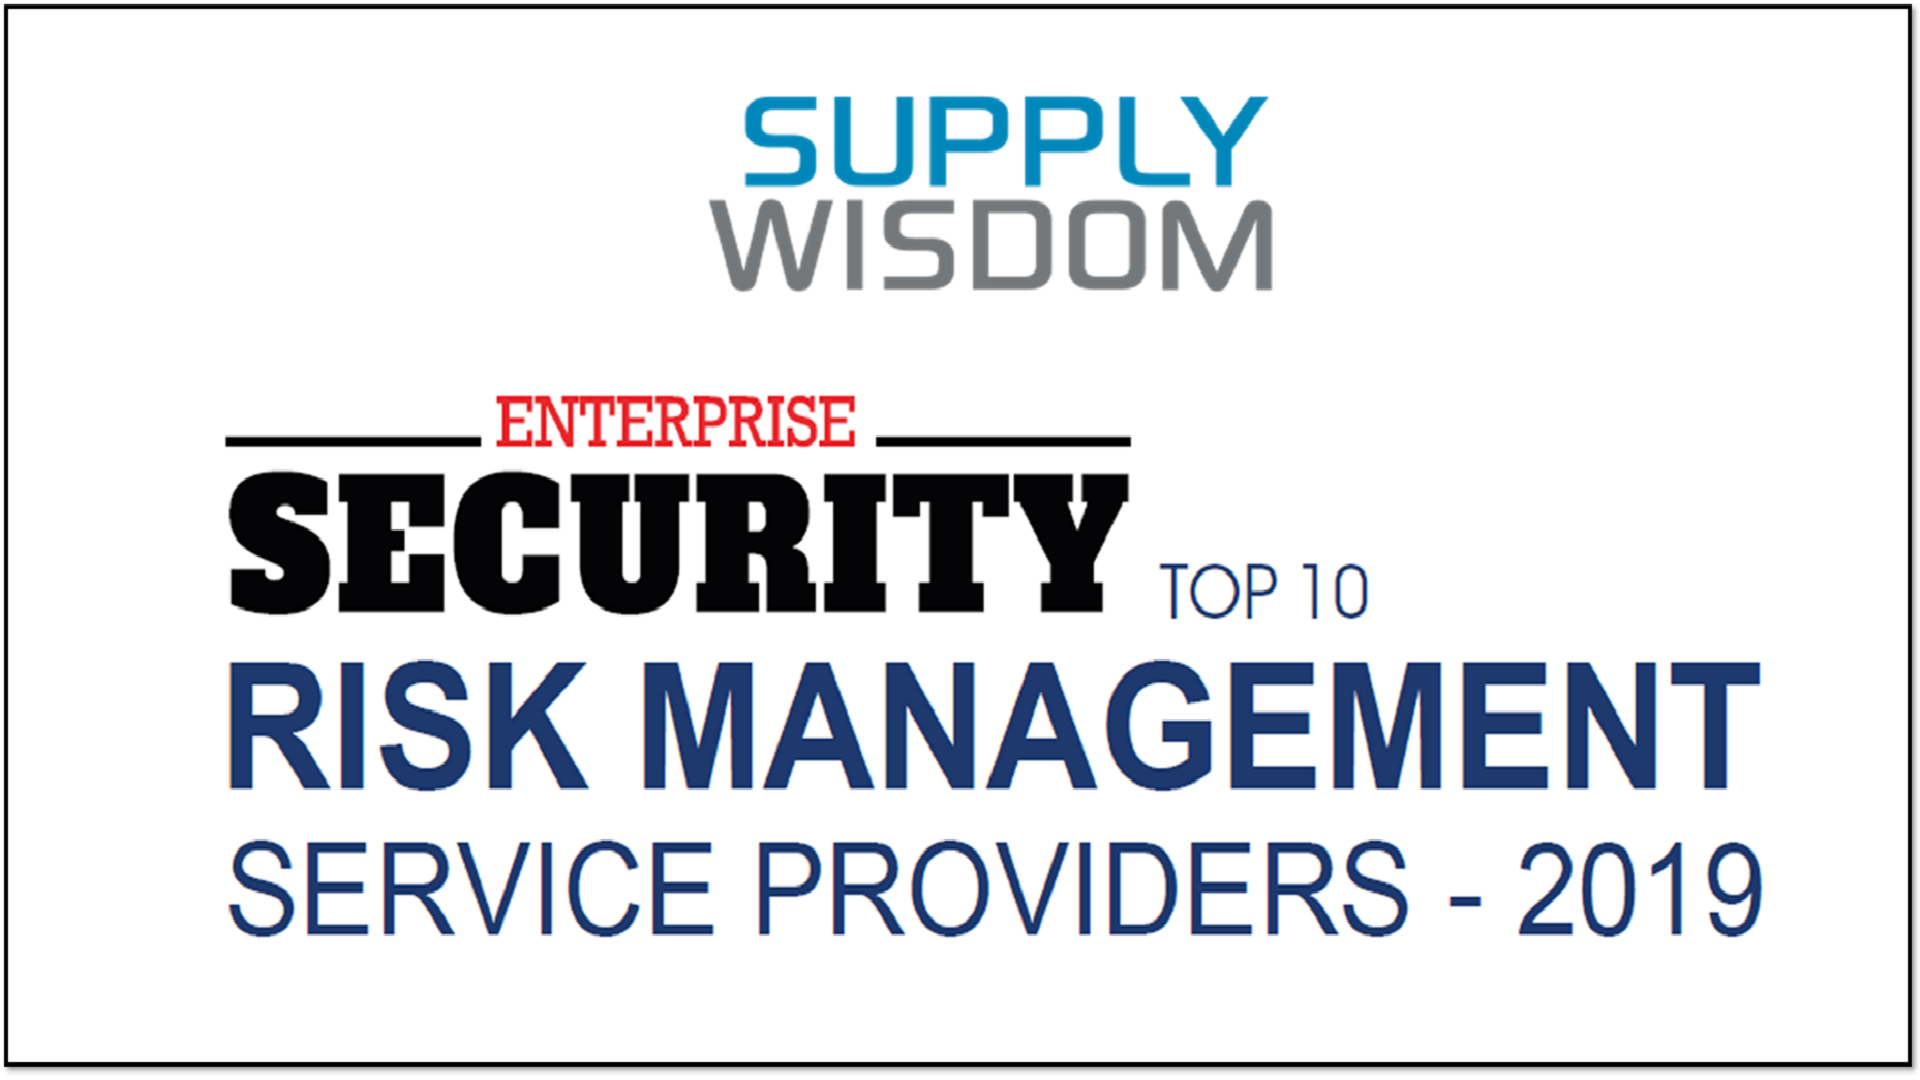 Supply Wisdom Top10 Risk Management Service Providers